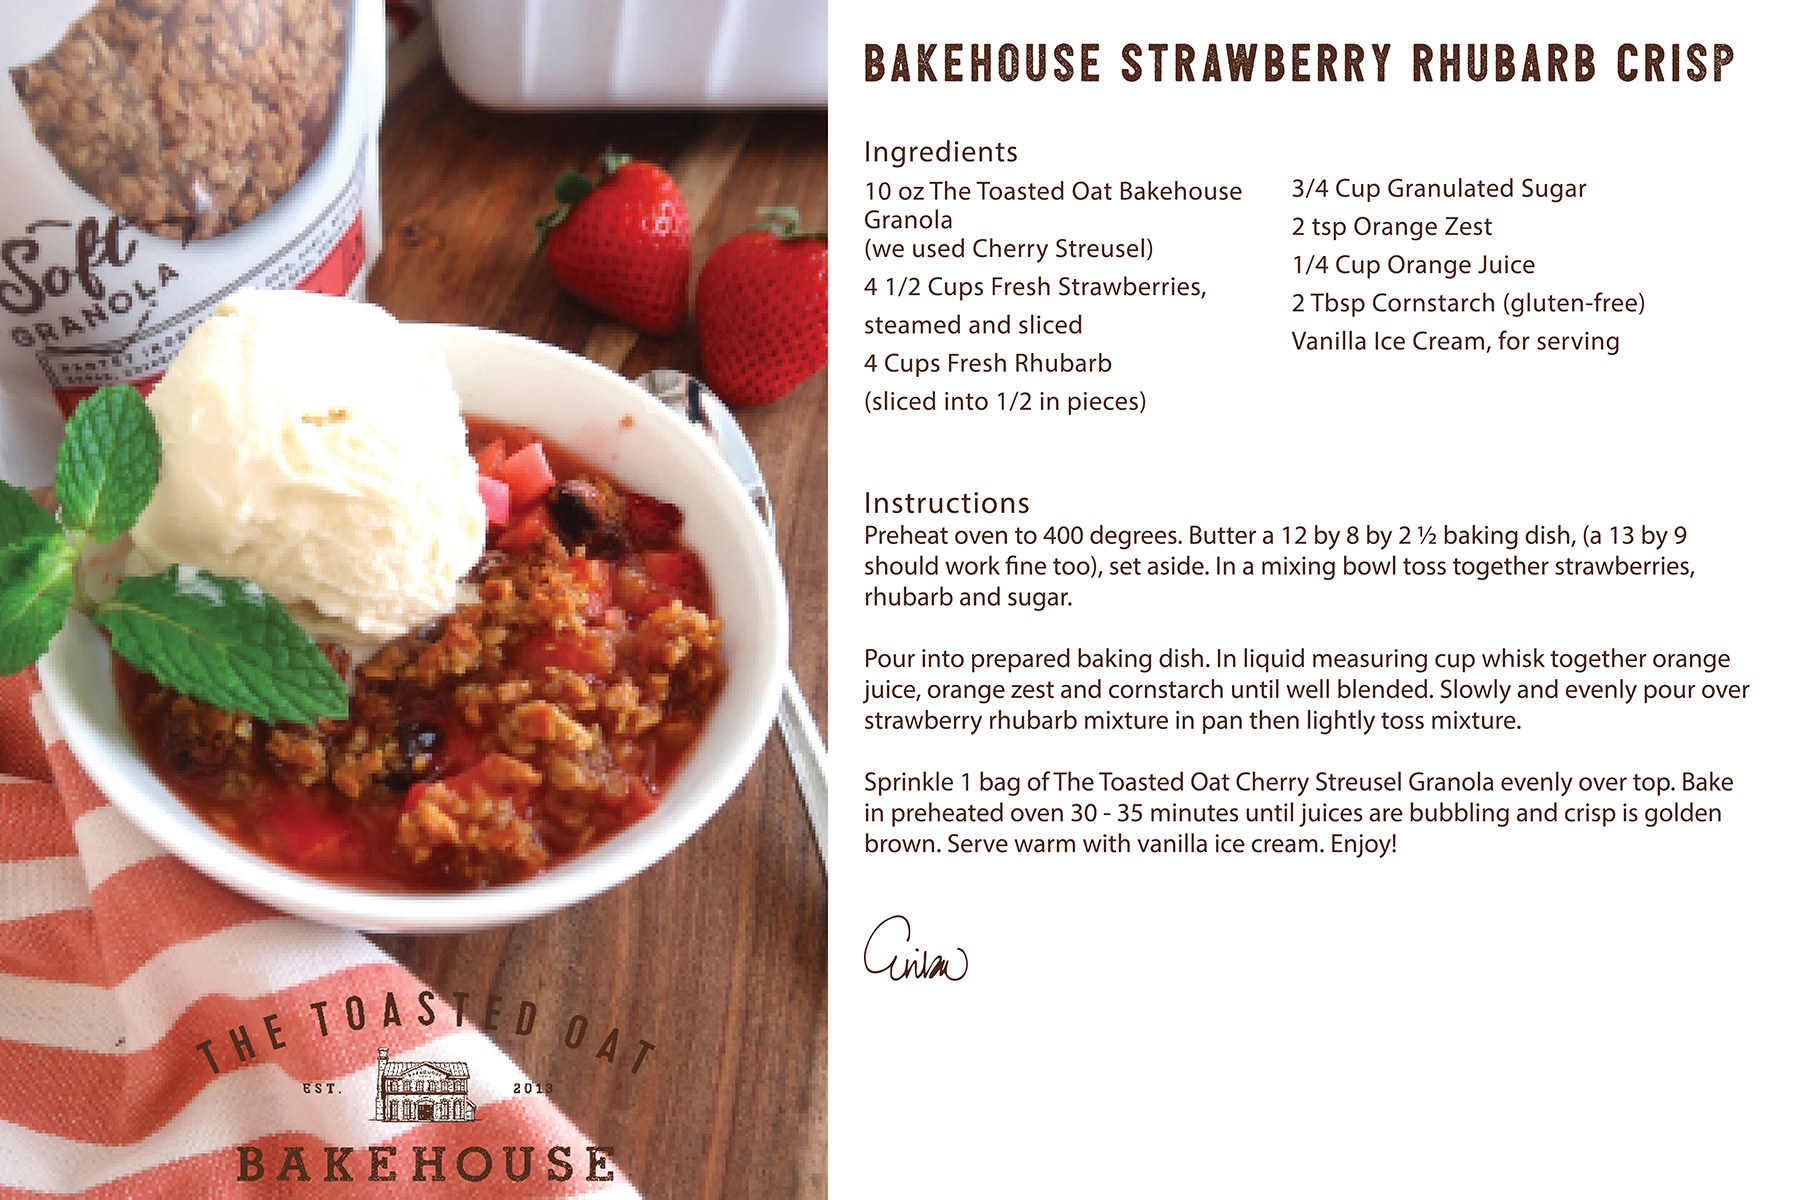 Bakehouse Strawberry Rhubarb Crisp